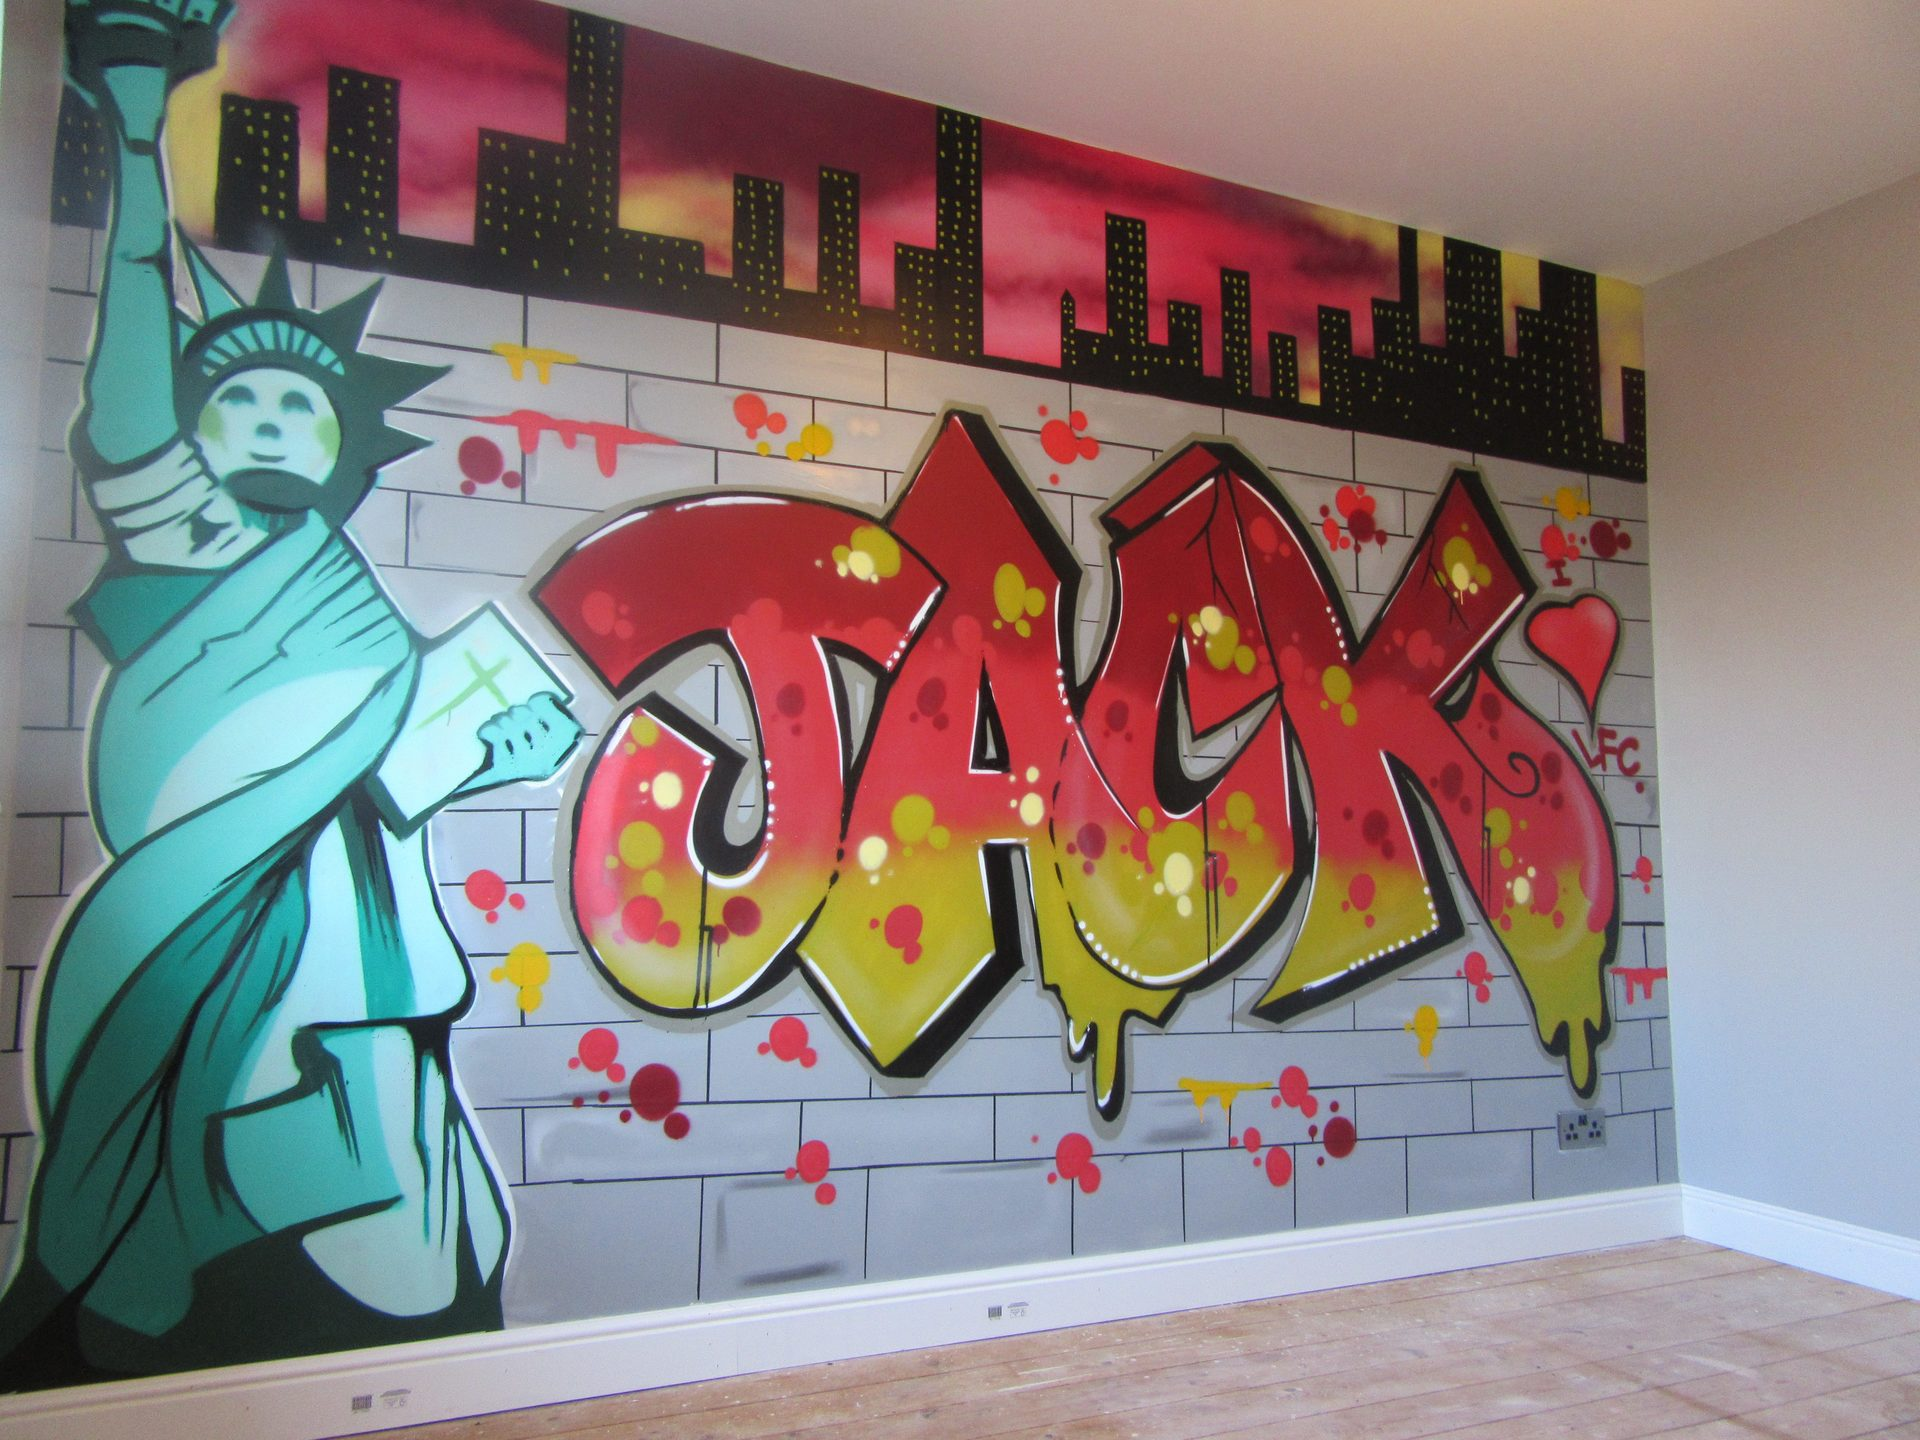 Bedroom wall graffiti murals Painting graffiti on bedroom walls